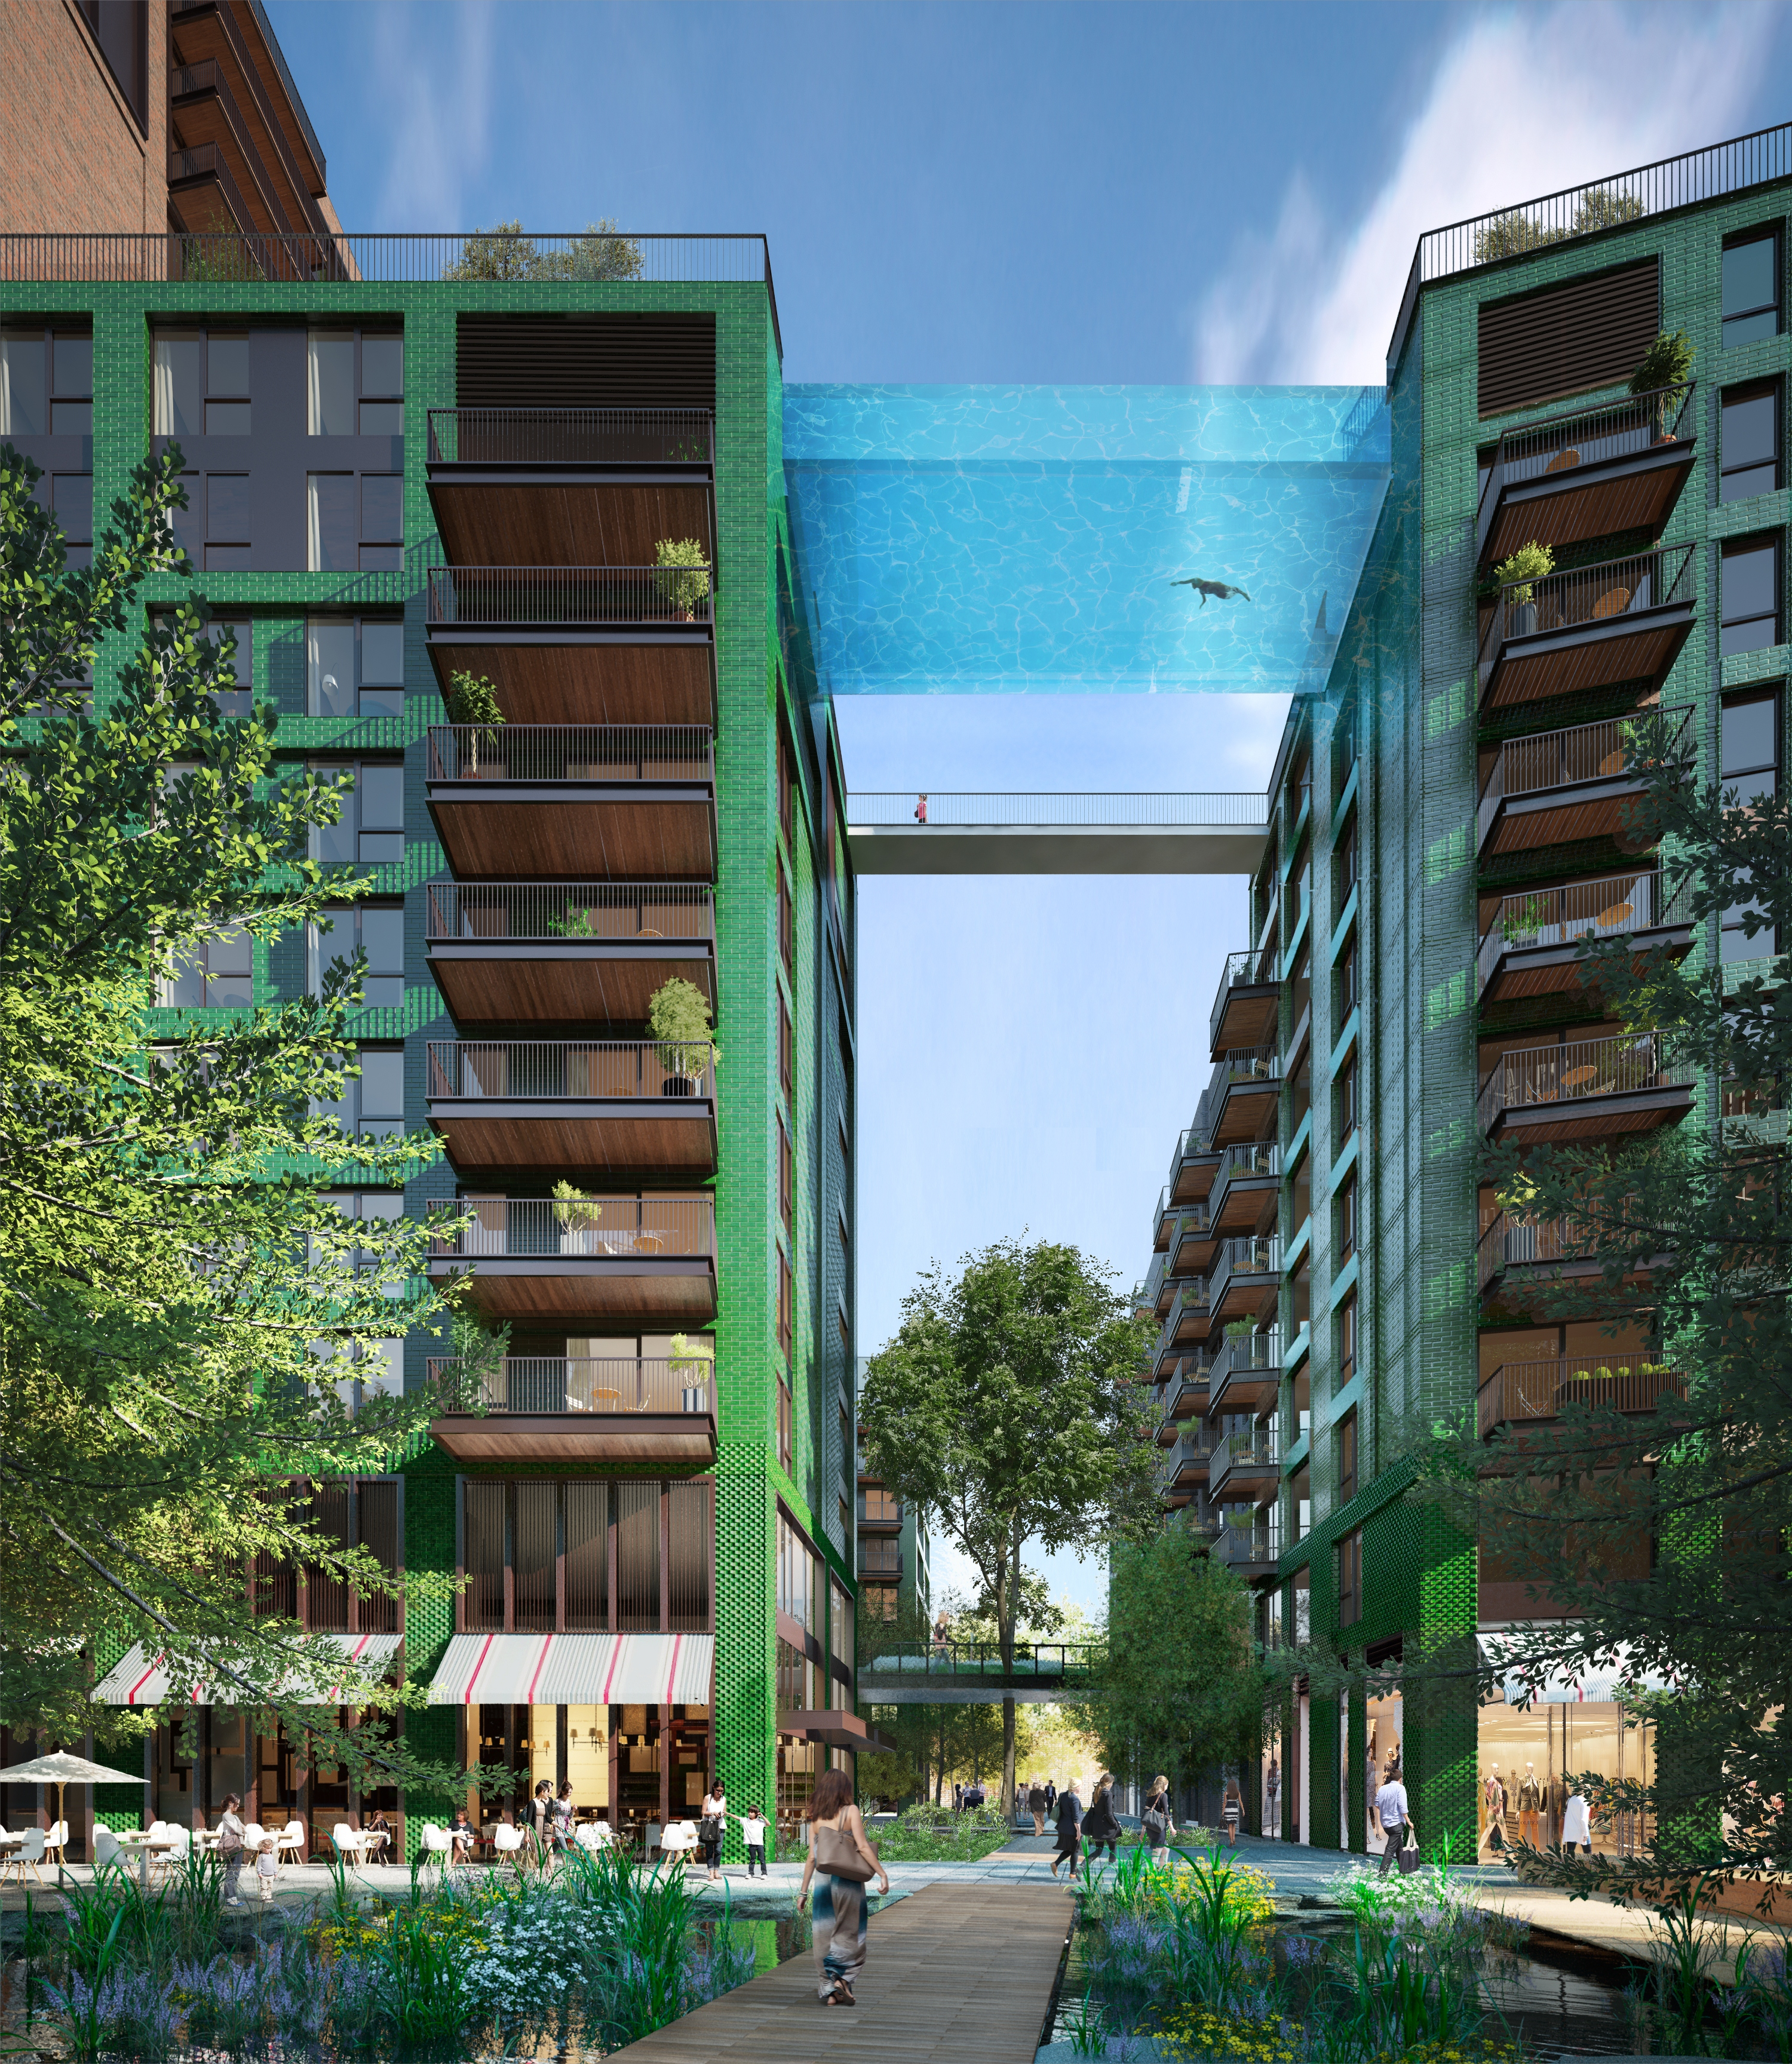 Sky Pool at Embassy Gardens by Eco World Ballymore 2 - stunning image of a transparent swimming pool suspended between two buuildings